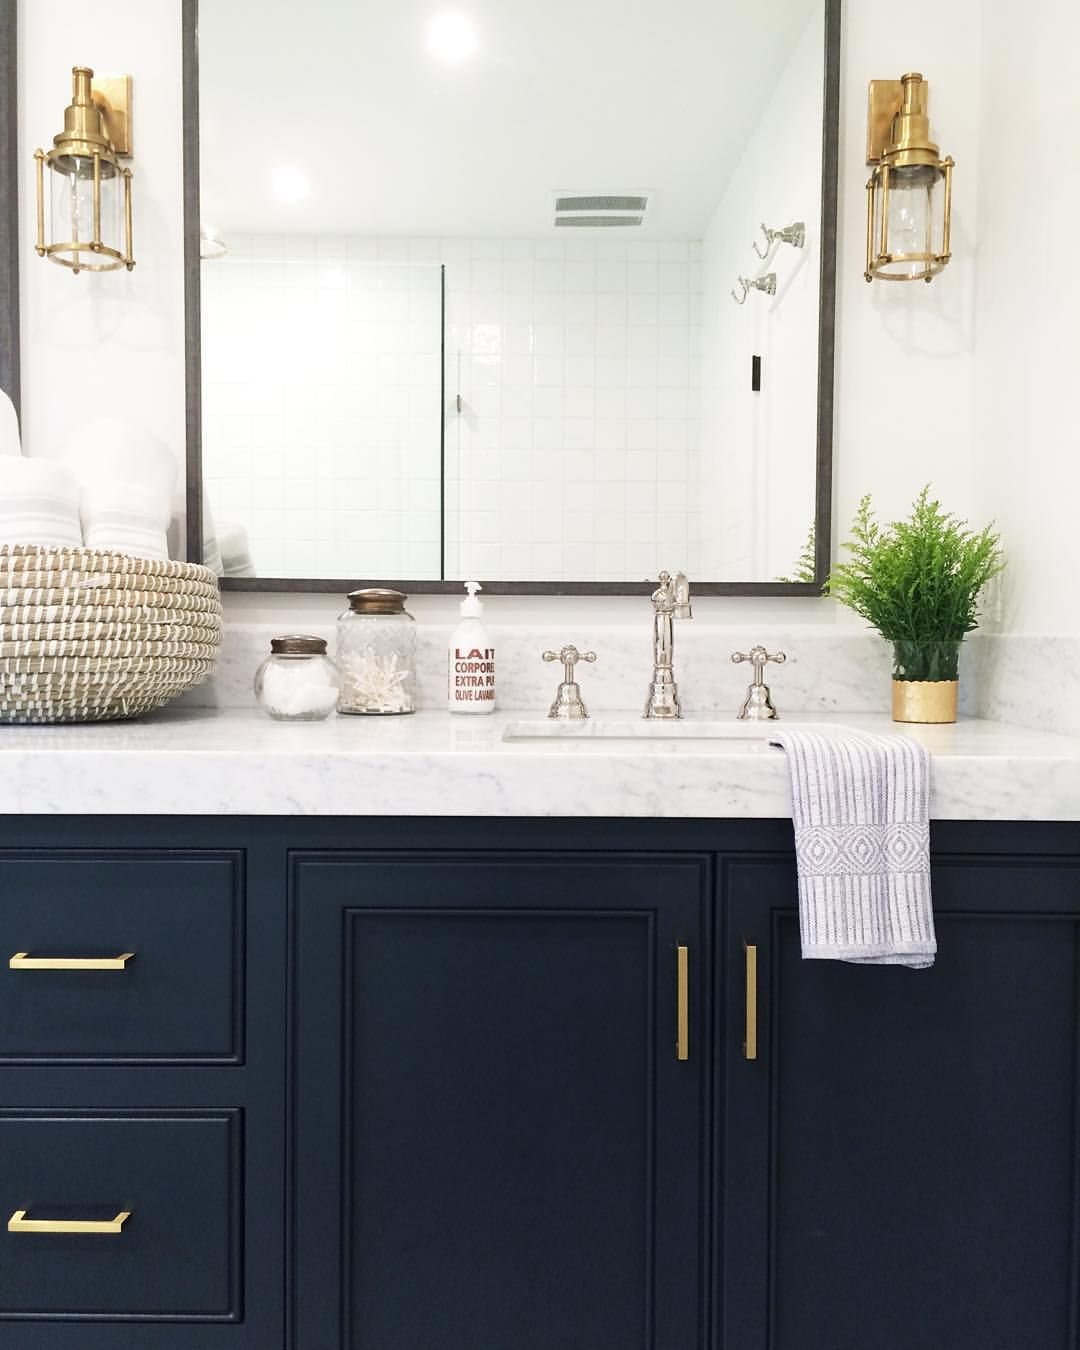 Blue Bathroom Vanity Cabinet | Navy Vanity Gold Hardware Marble Vanity Gold Sconces Countertop